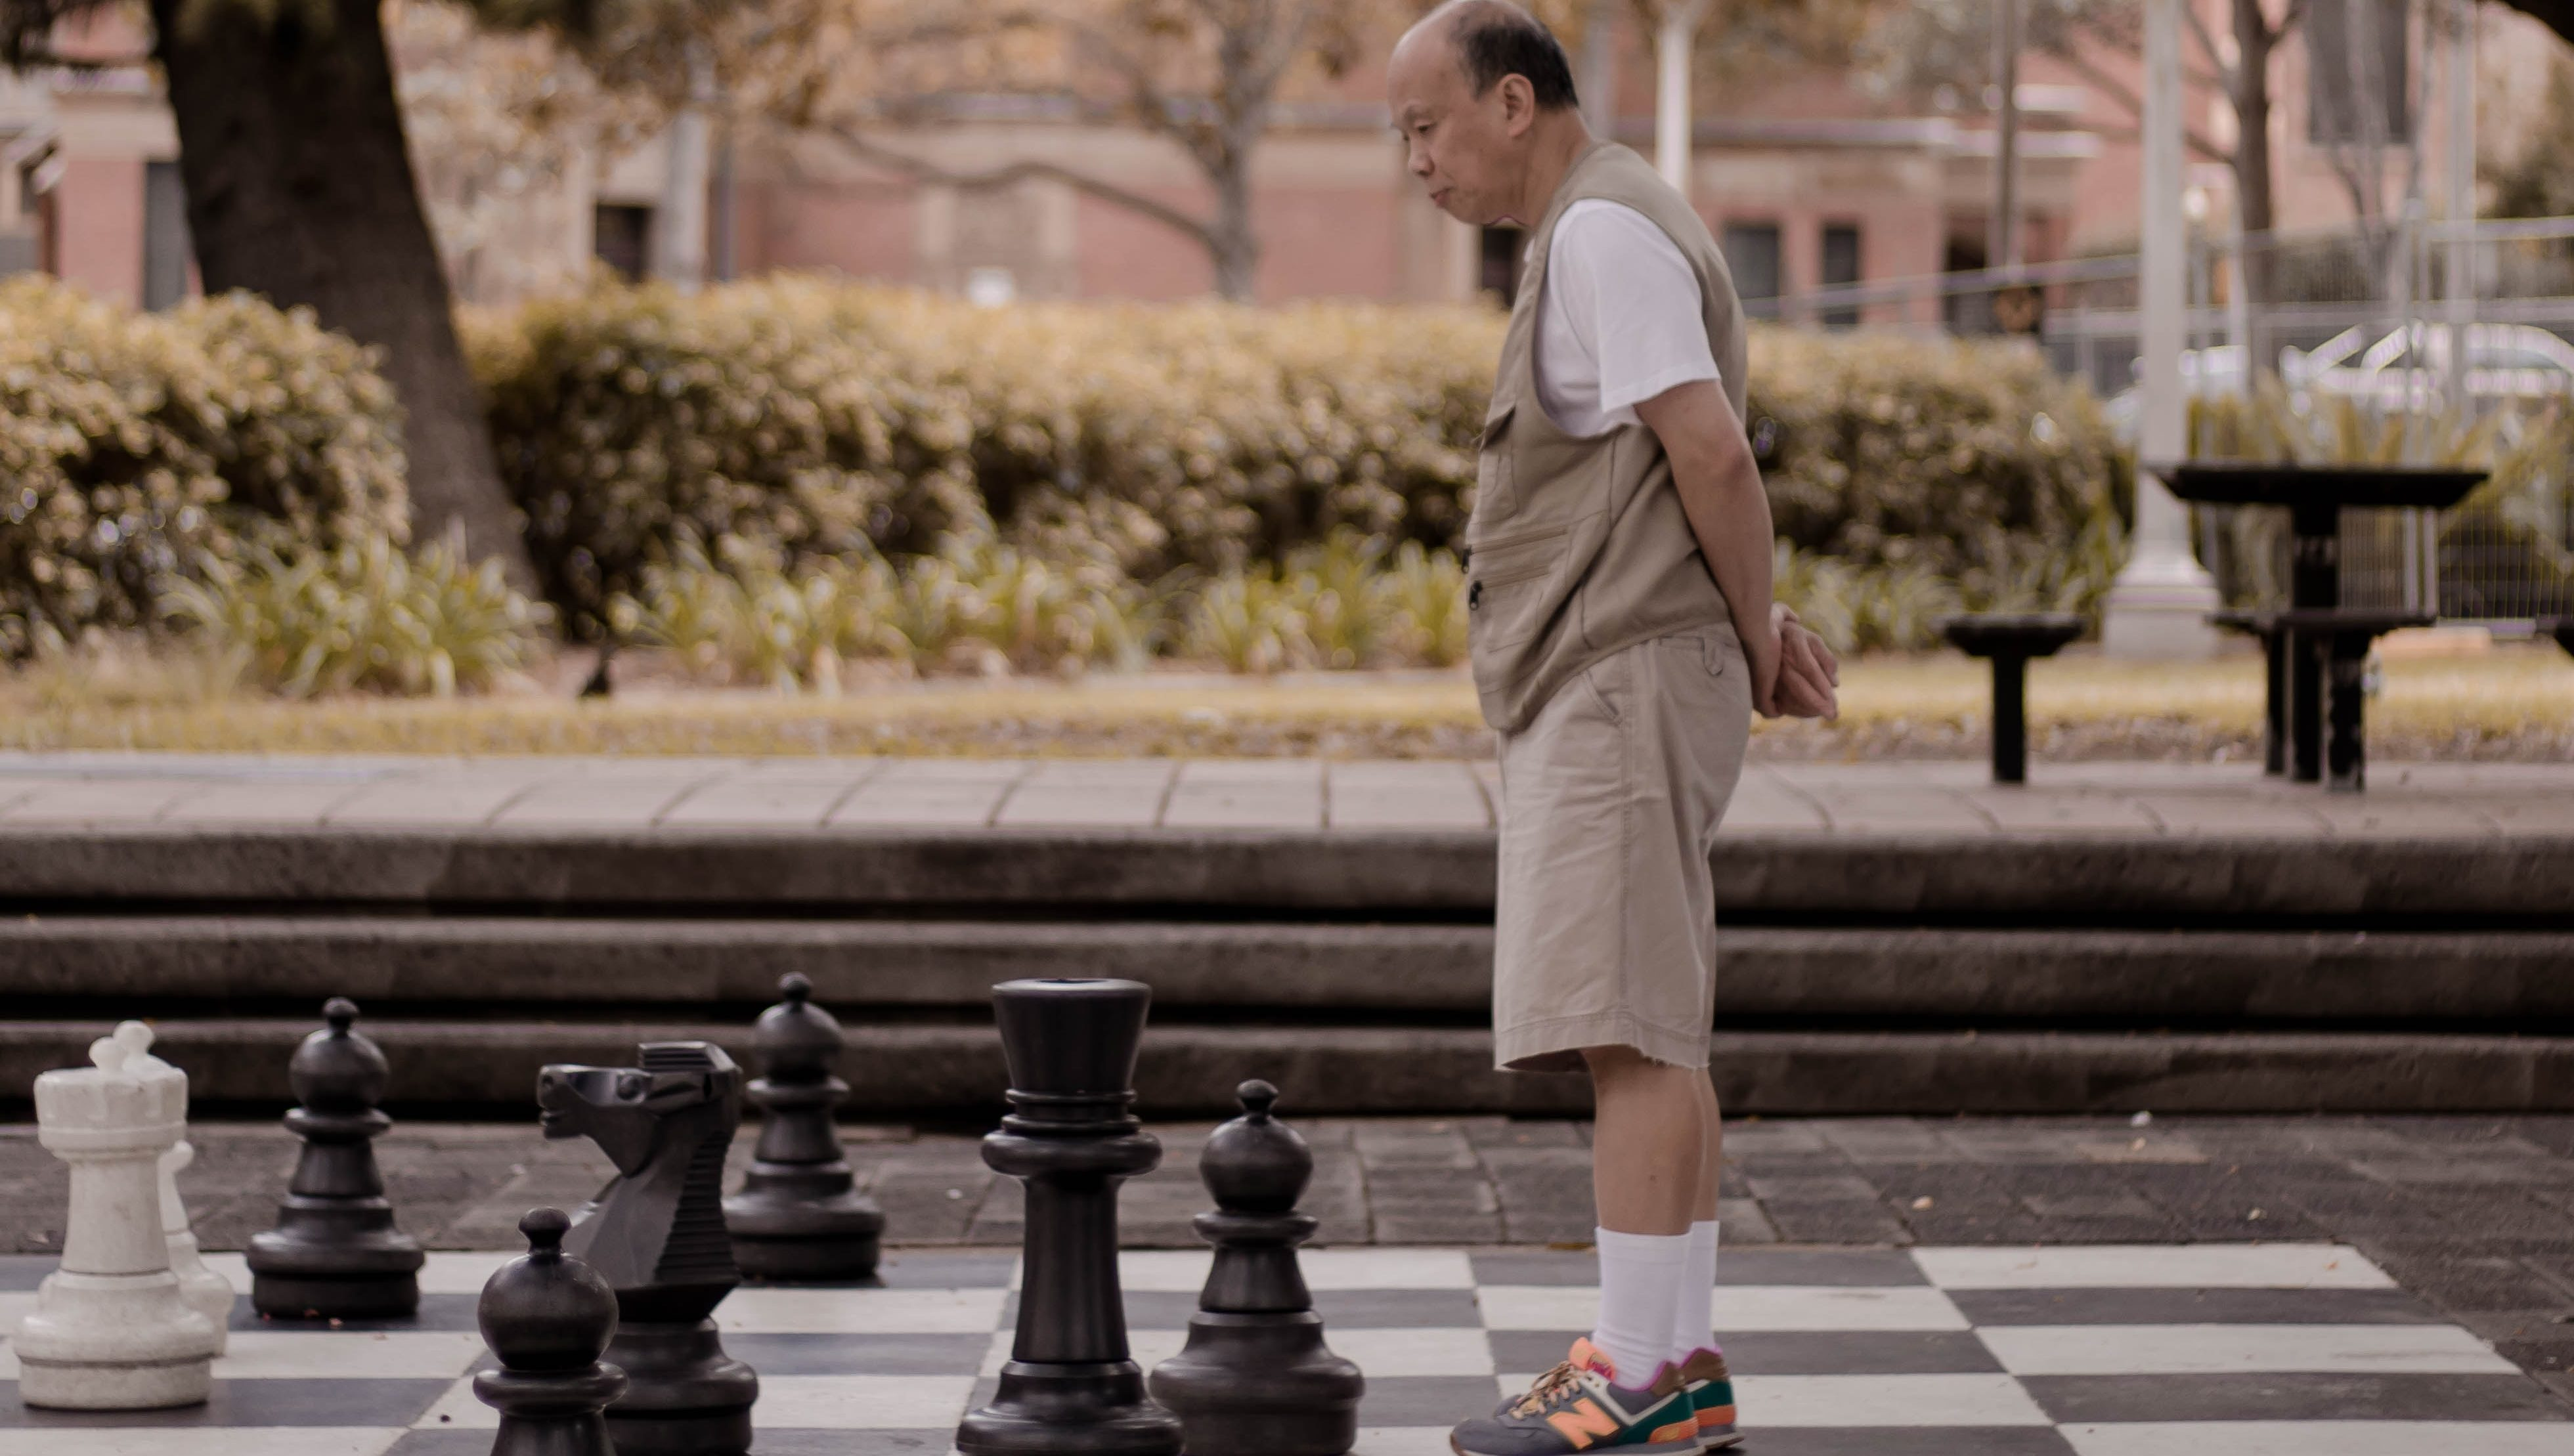 An older person standing on a life-size chessboard in a park.